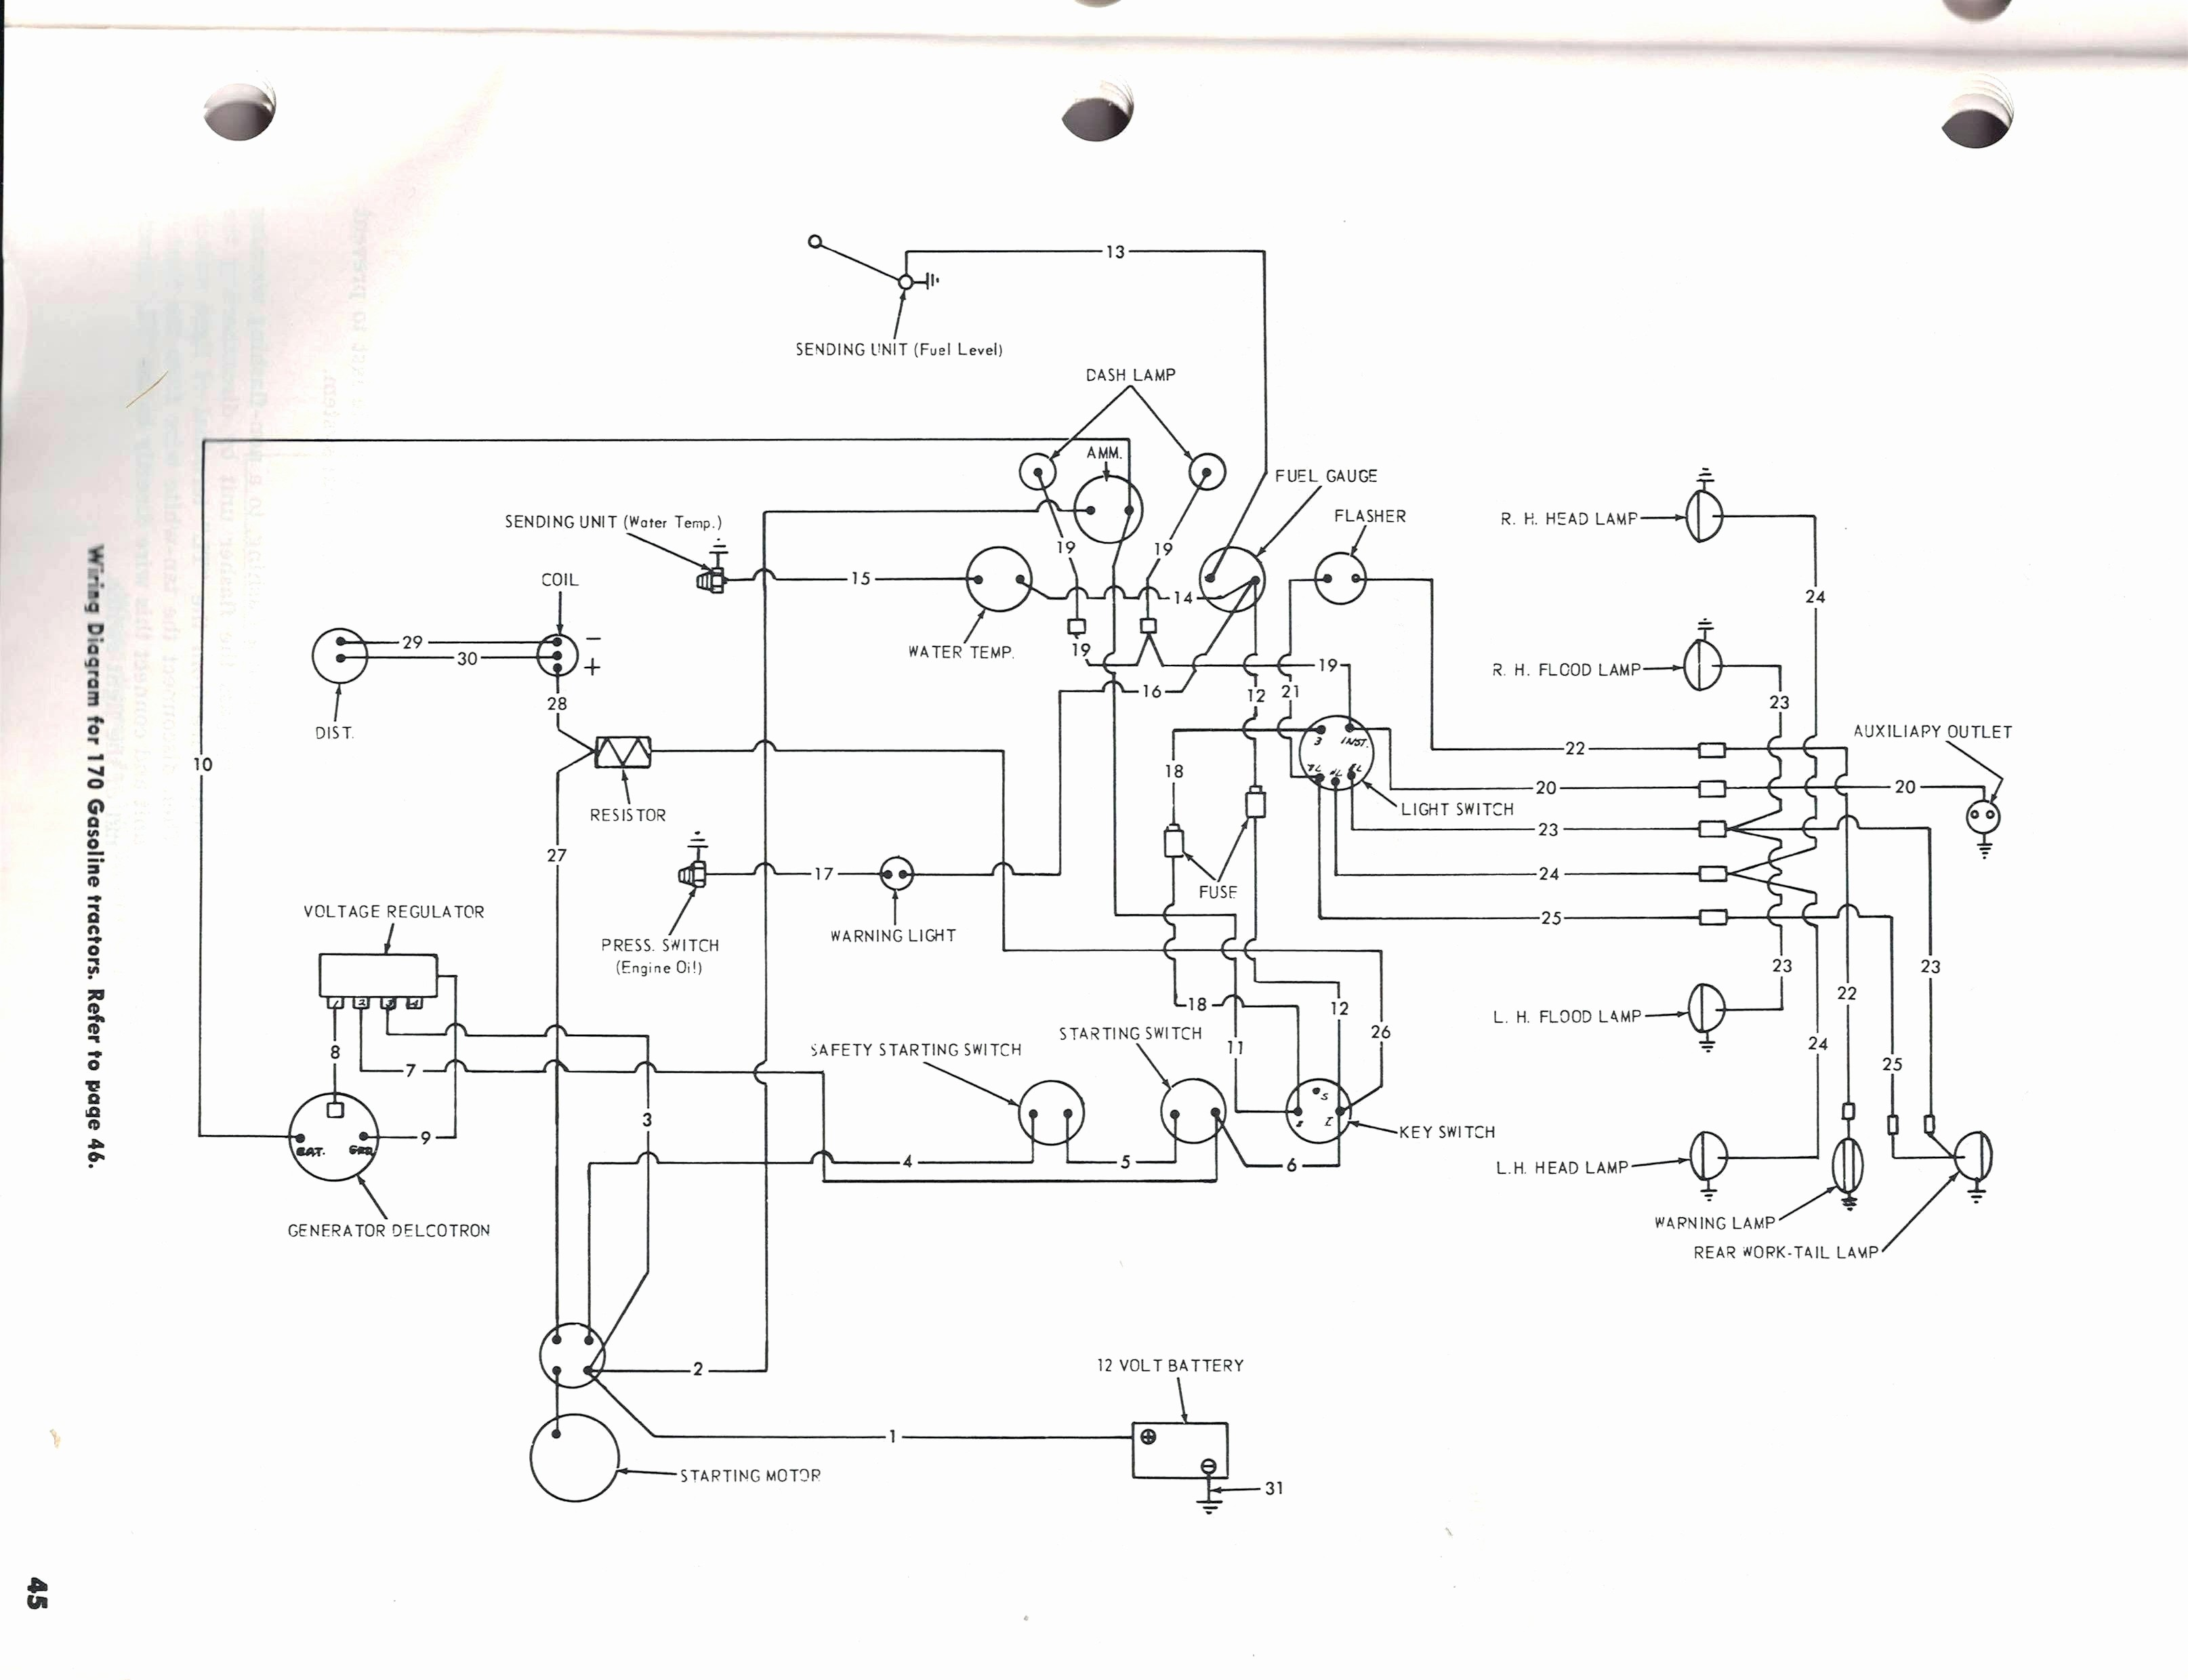 9n ford tractor wiring diagram awesome 8n ford tractor wiring diagram download of 9n ford tractor wiring diagram?quality\=80\&strip\=all 12v wiring diagram ford 800 tractor free picture data wiring diagram